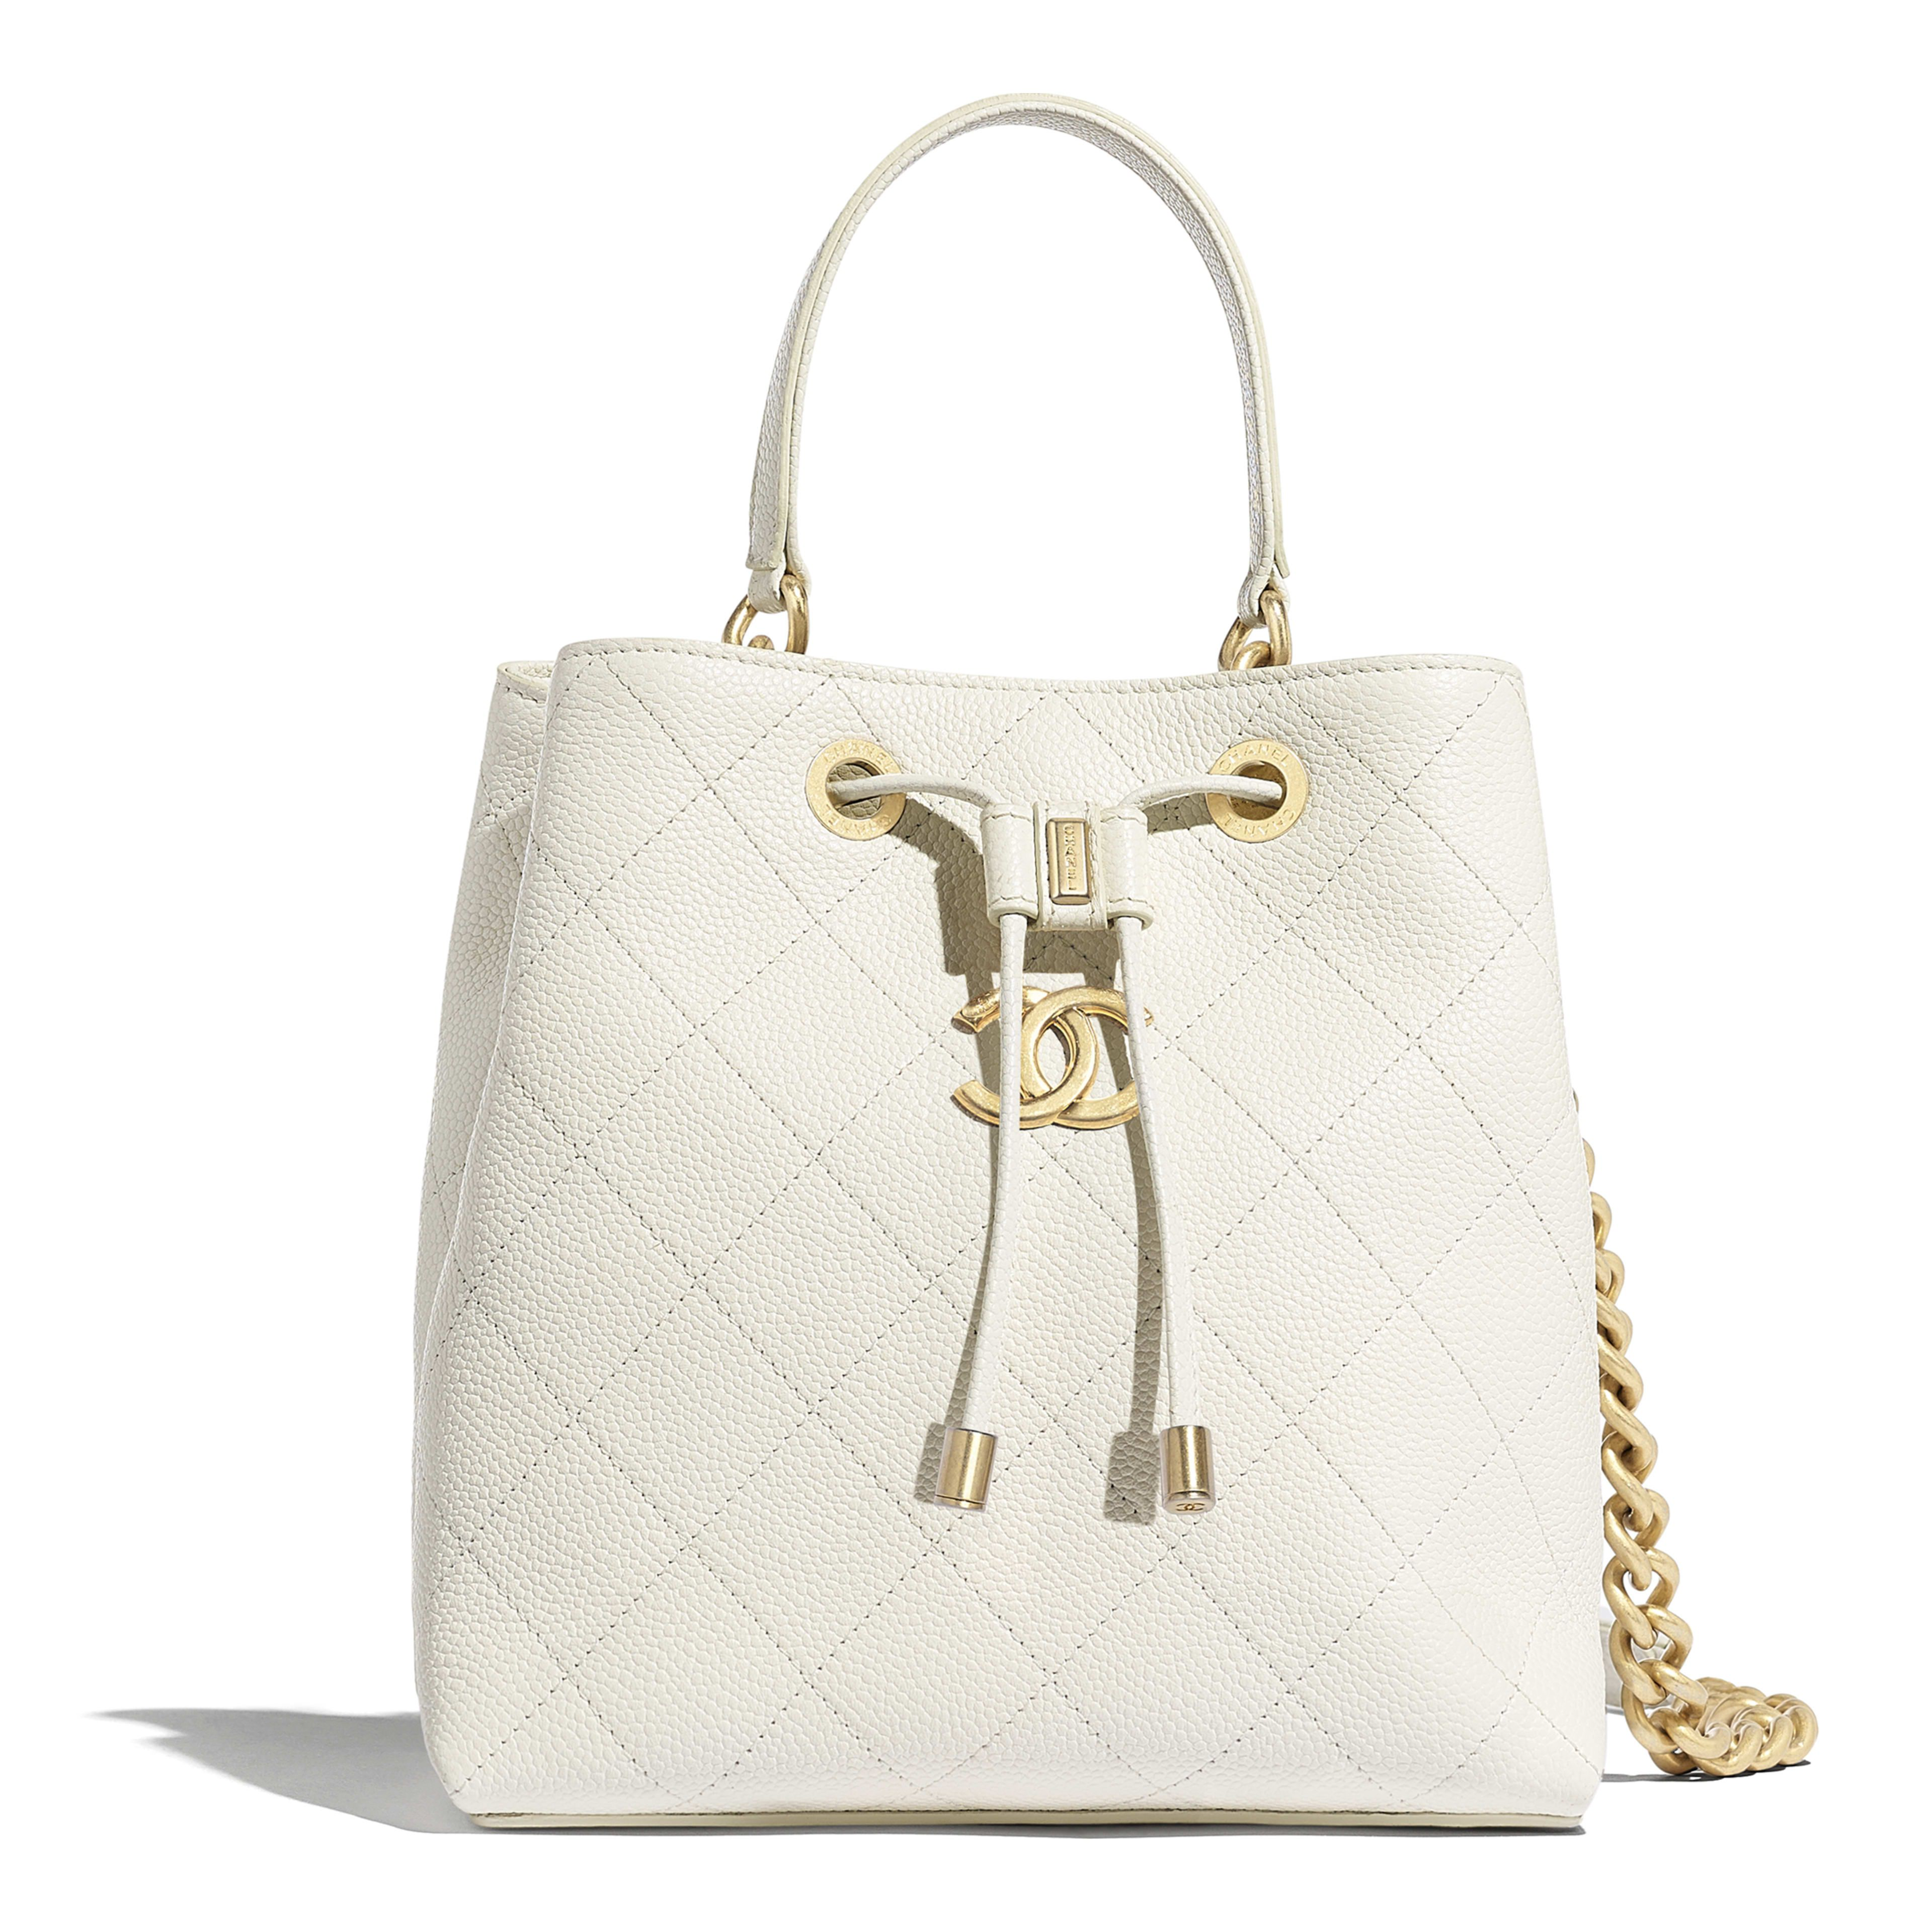 18a948c67b Drawstring Bag - White - Grained Calfskin   Gold-Tone Metal - Default view  - see full sized version